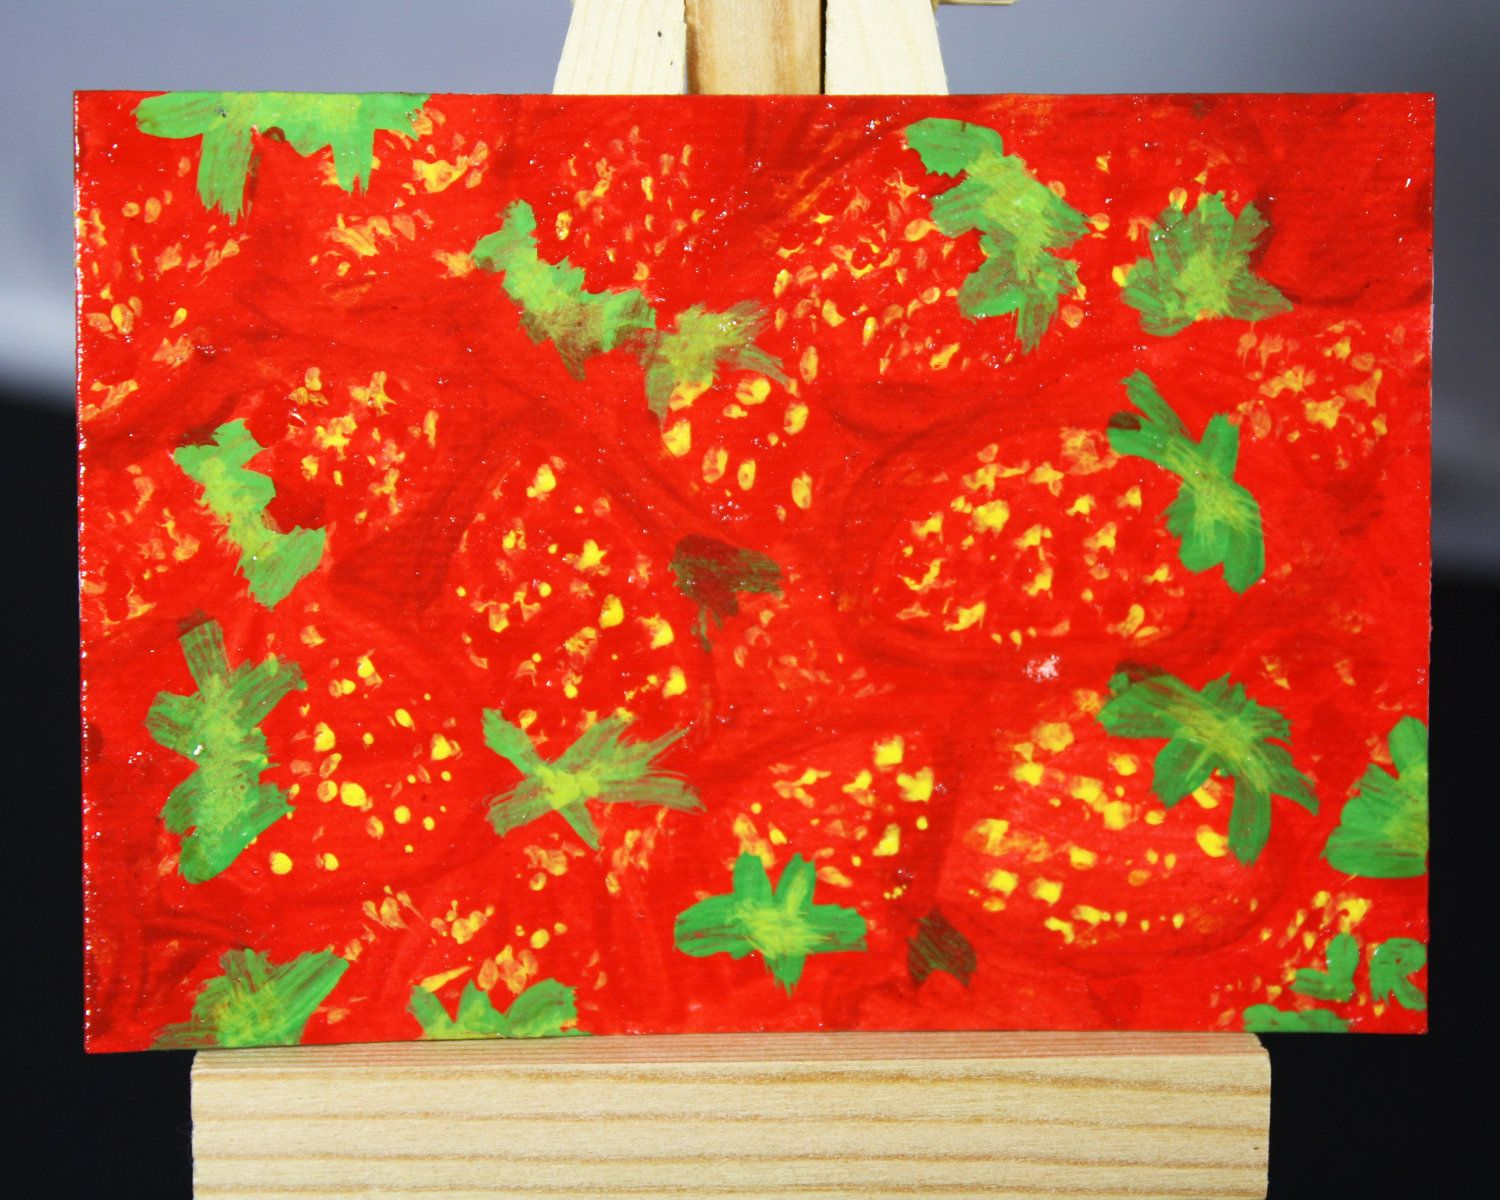 Original Acrylic ACEO Painting of A Bunch of Strawberries by JulibeeKitsch on Etsy for $12